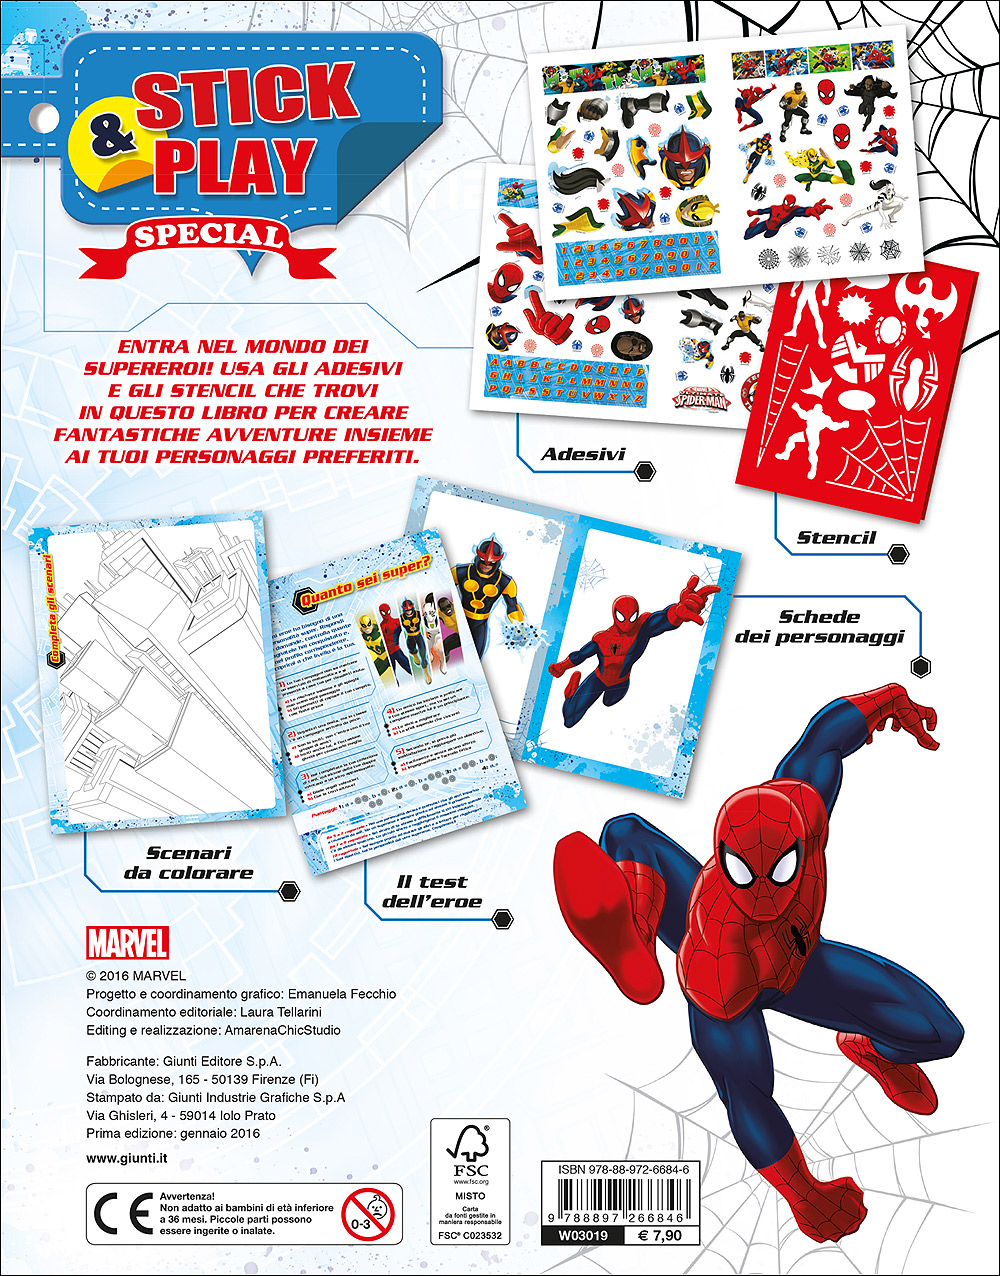 Stick&Play Special - Ultimate Spider-Man